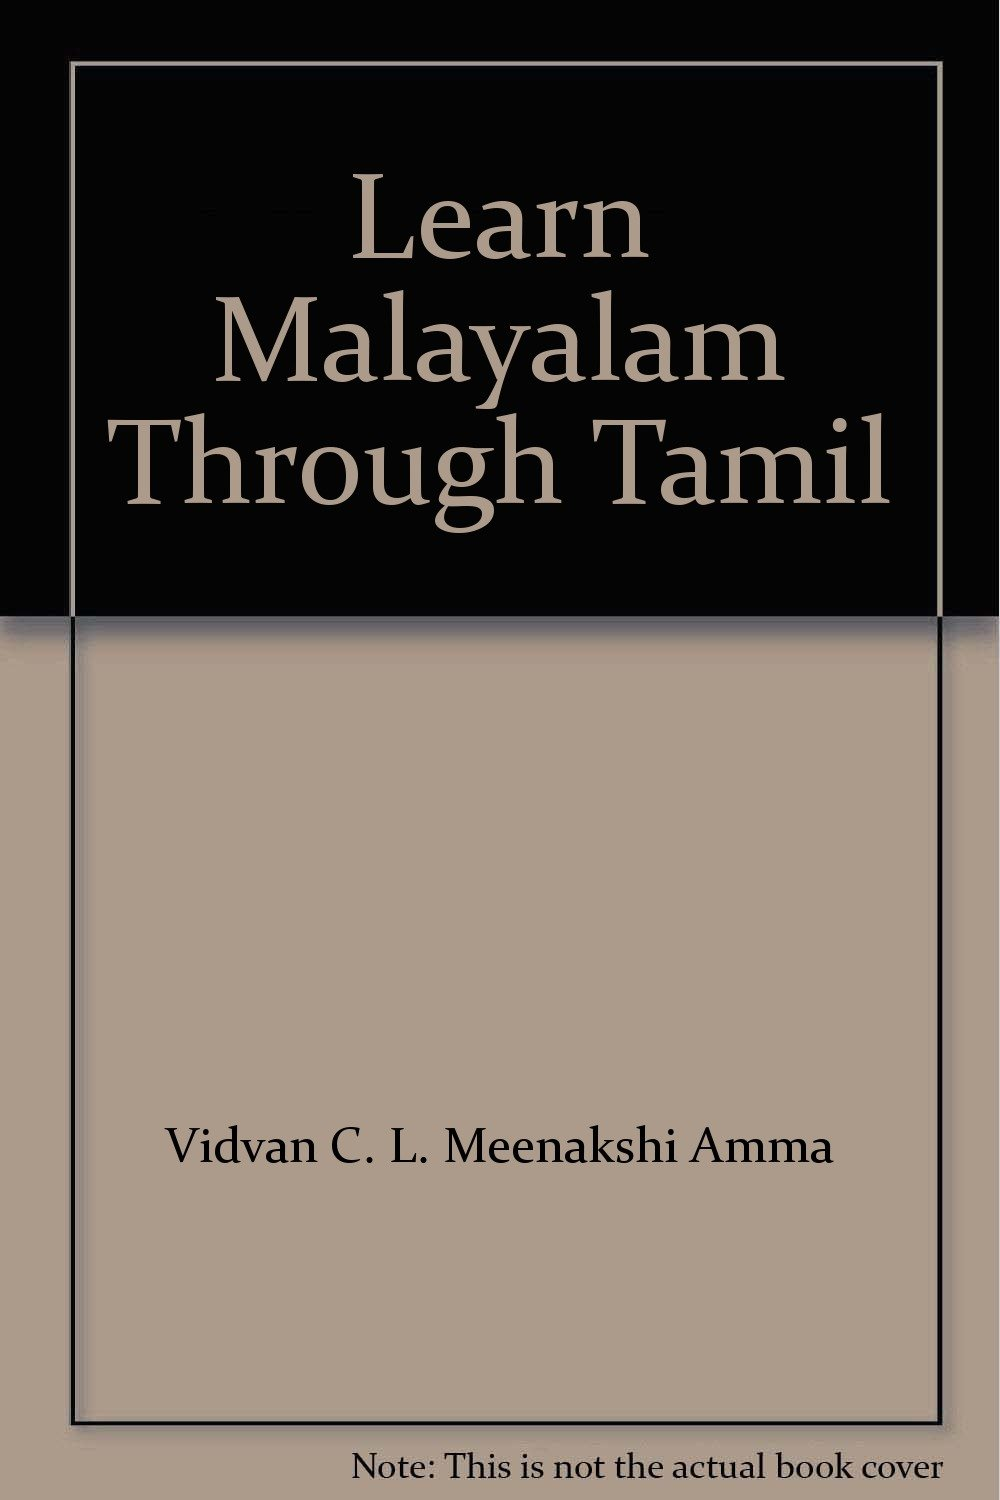 LEARN MALAYALAM THROUGH TAMIL PDF DOWNLOAD